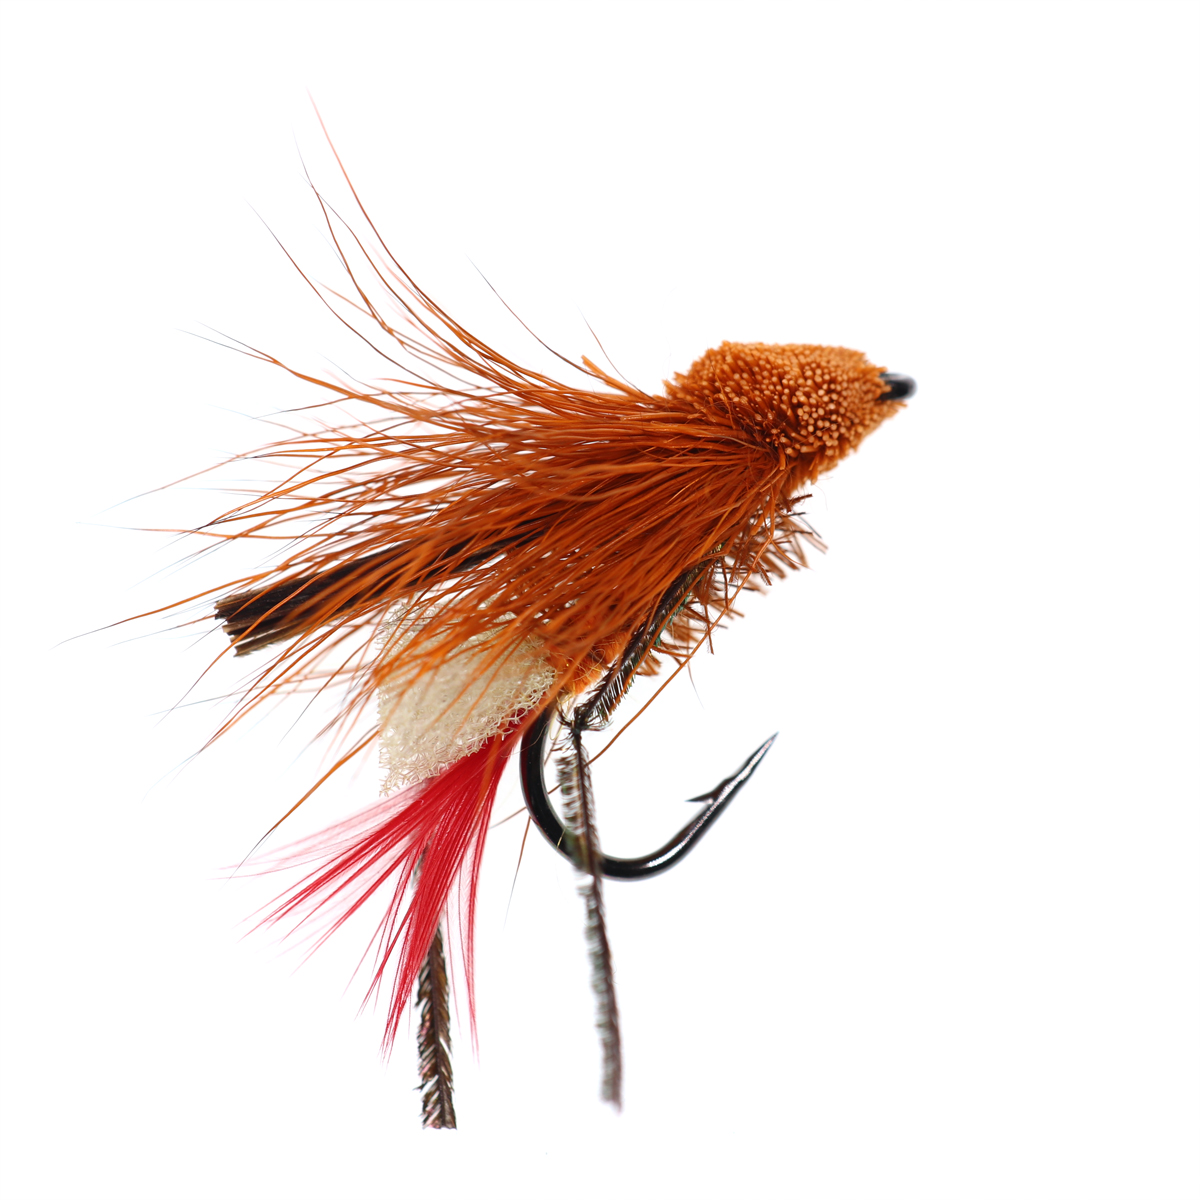 5PCS #10 Trout Fishing Fly Grass Hopper Fly terrestrial Hopper Fly Floating Bass Crappie Bug Bait Artificial Lure 12